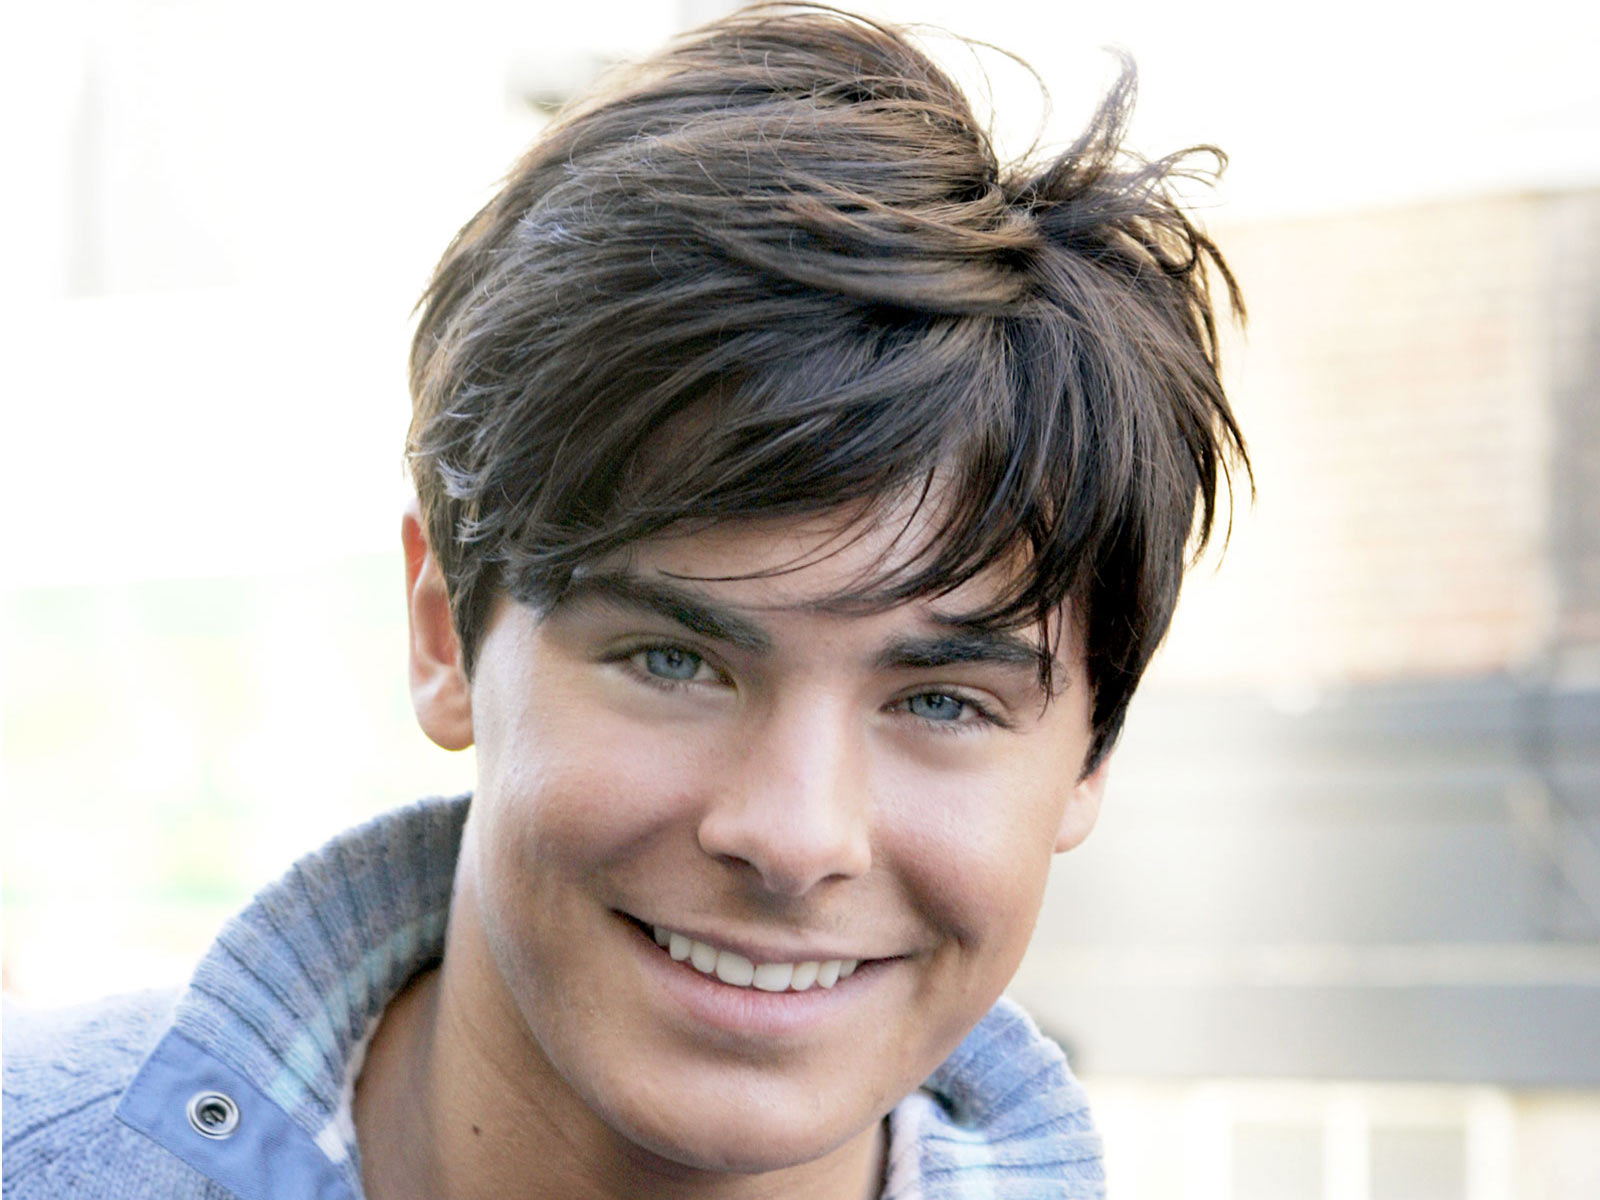 Below You Can Find Zac Efron HD Wallpapers 2011 To Decorate Your